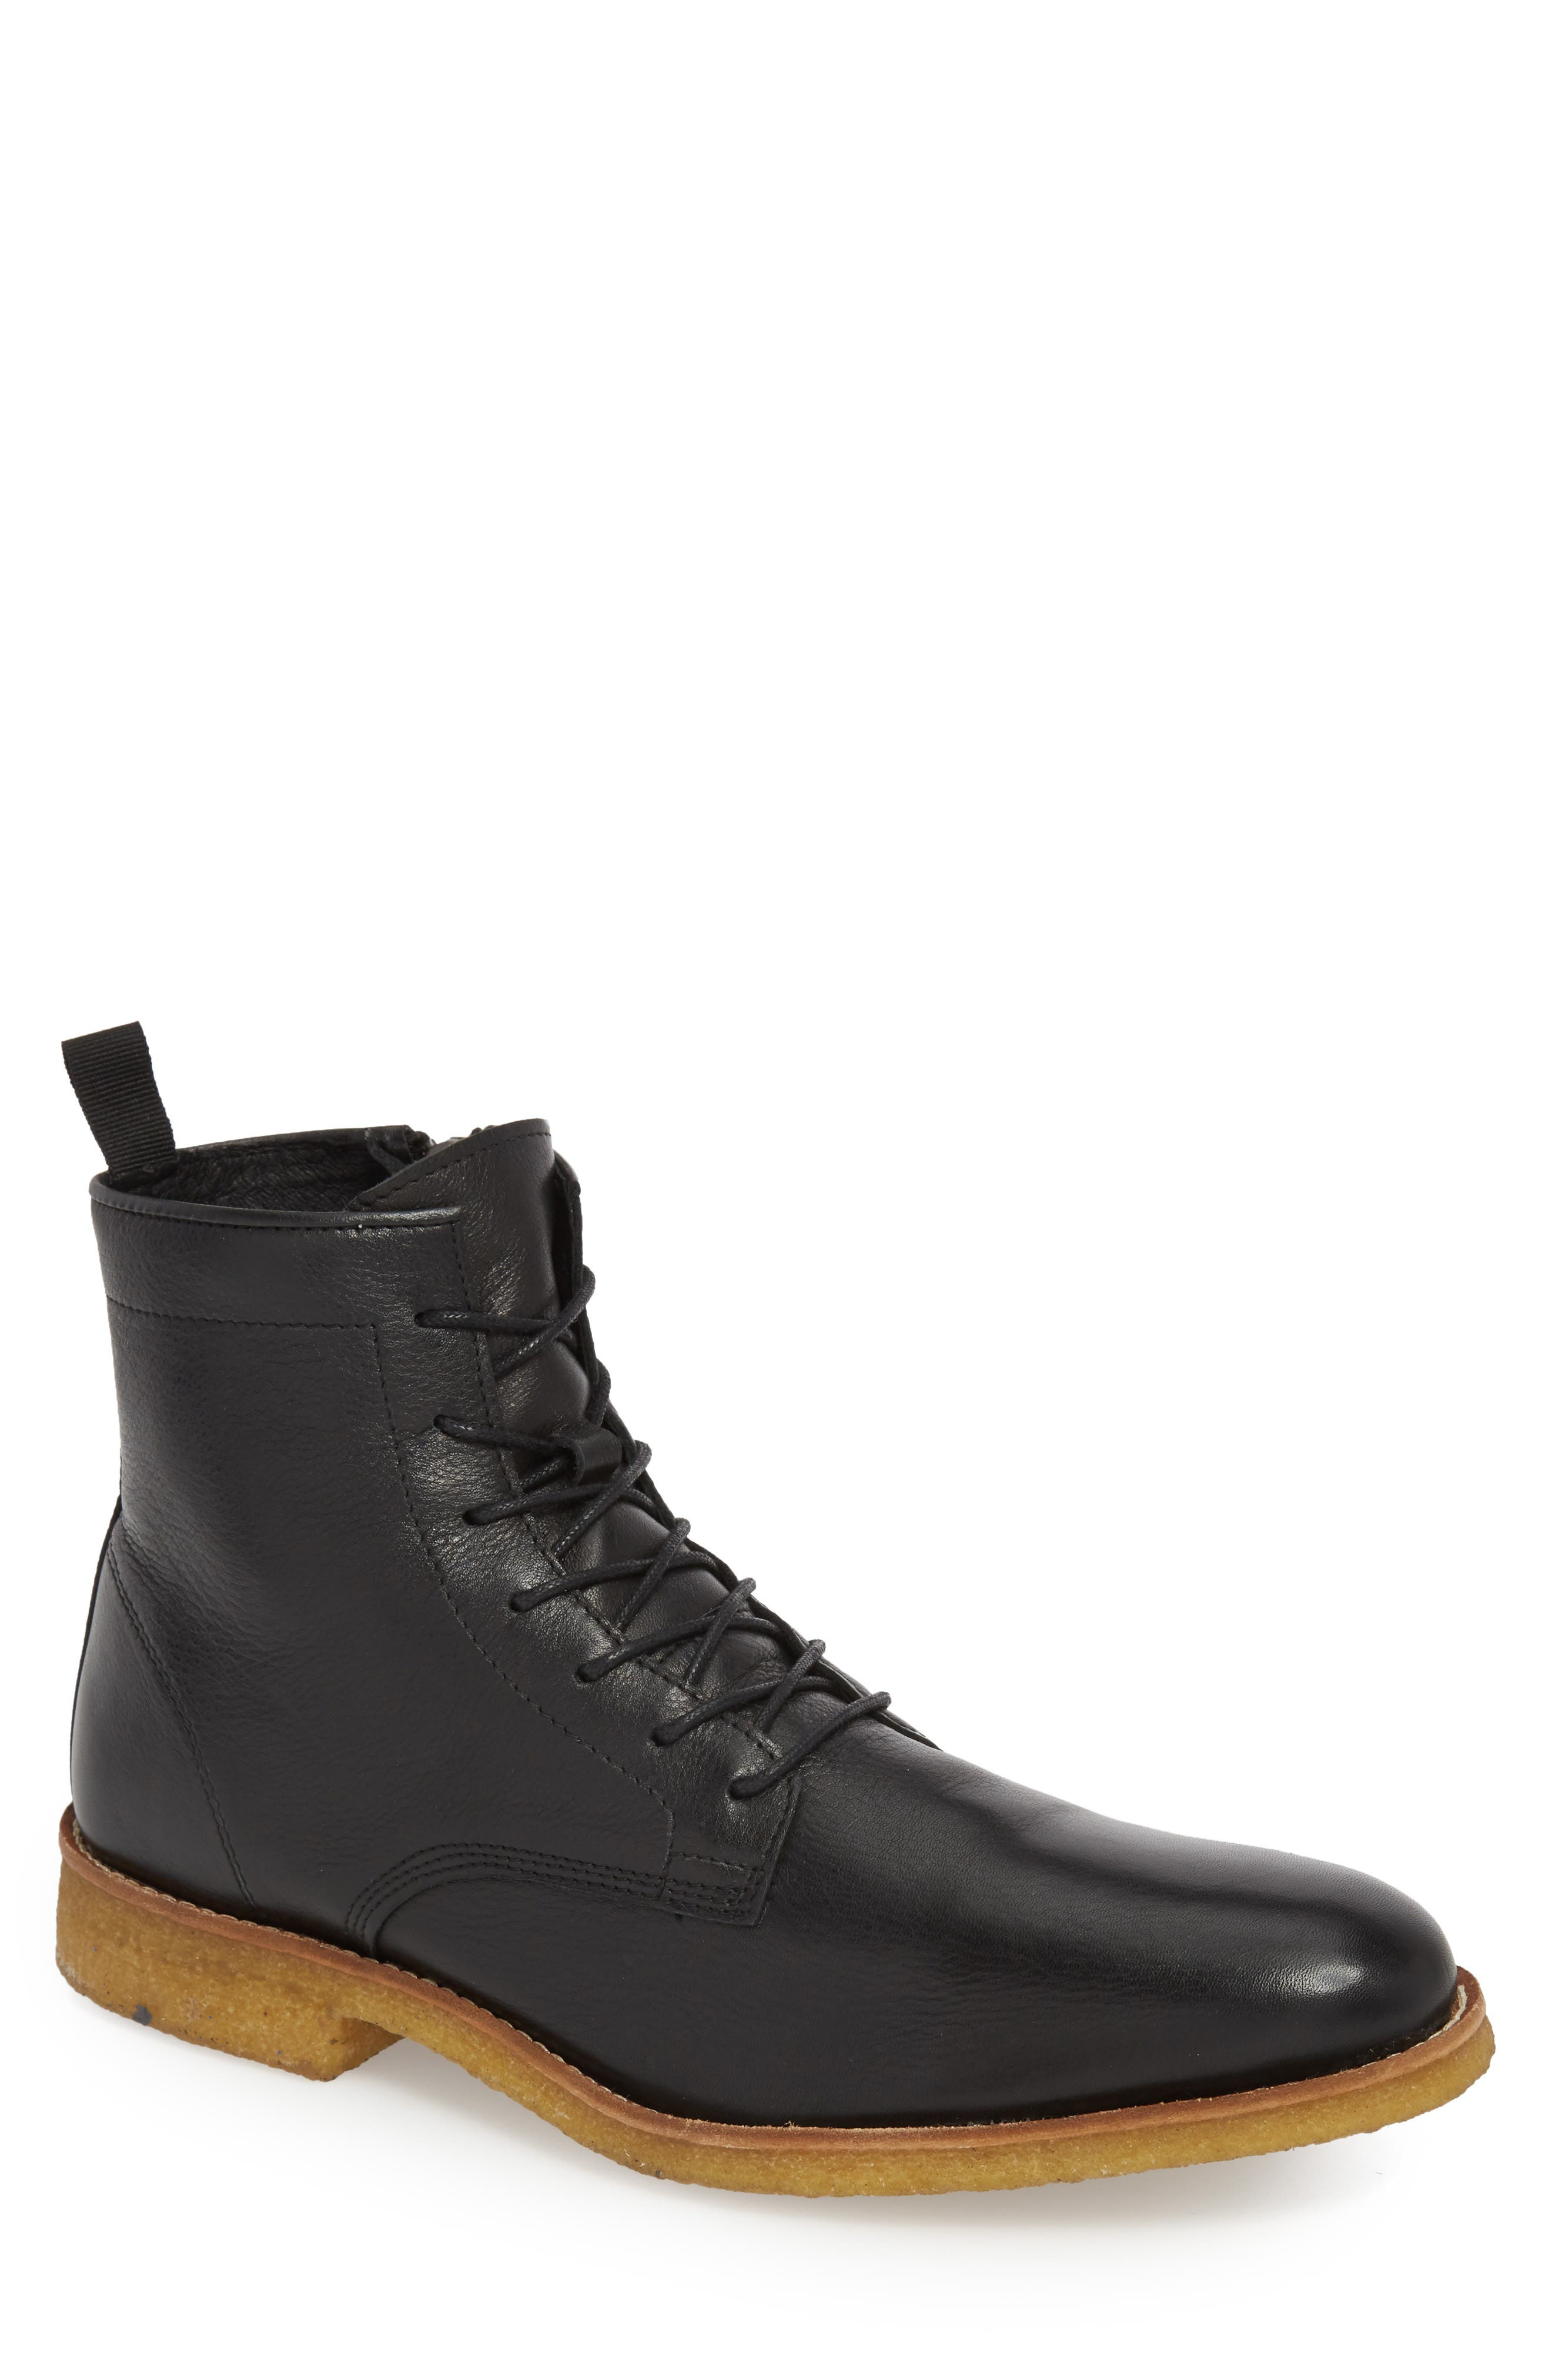 SUPPLY LAB Jonah Plain Toe Boot in Black Leather